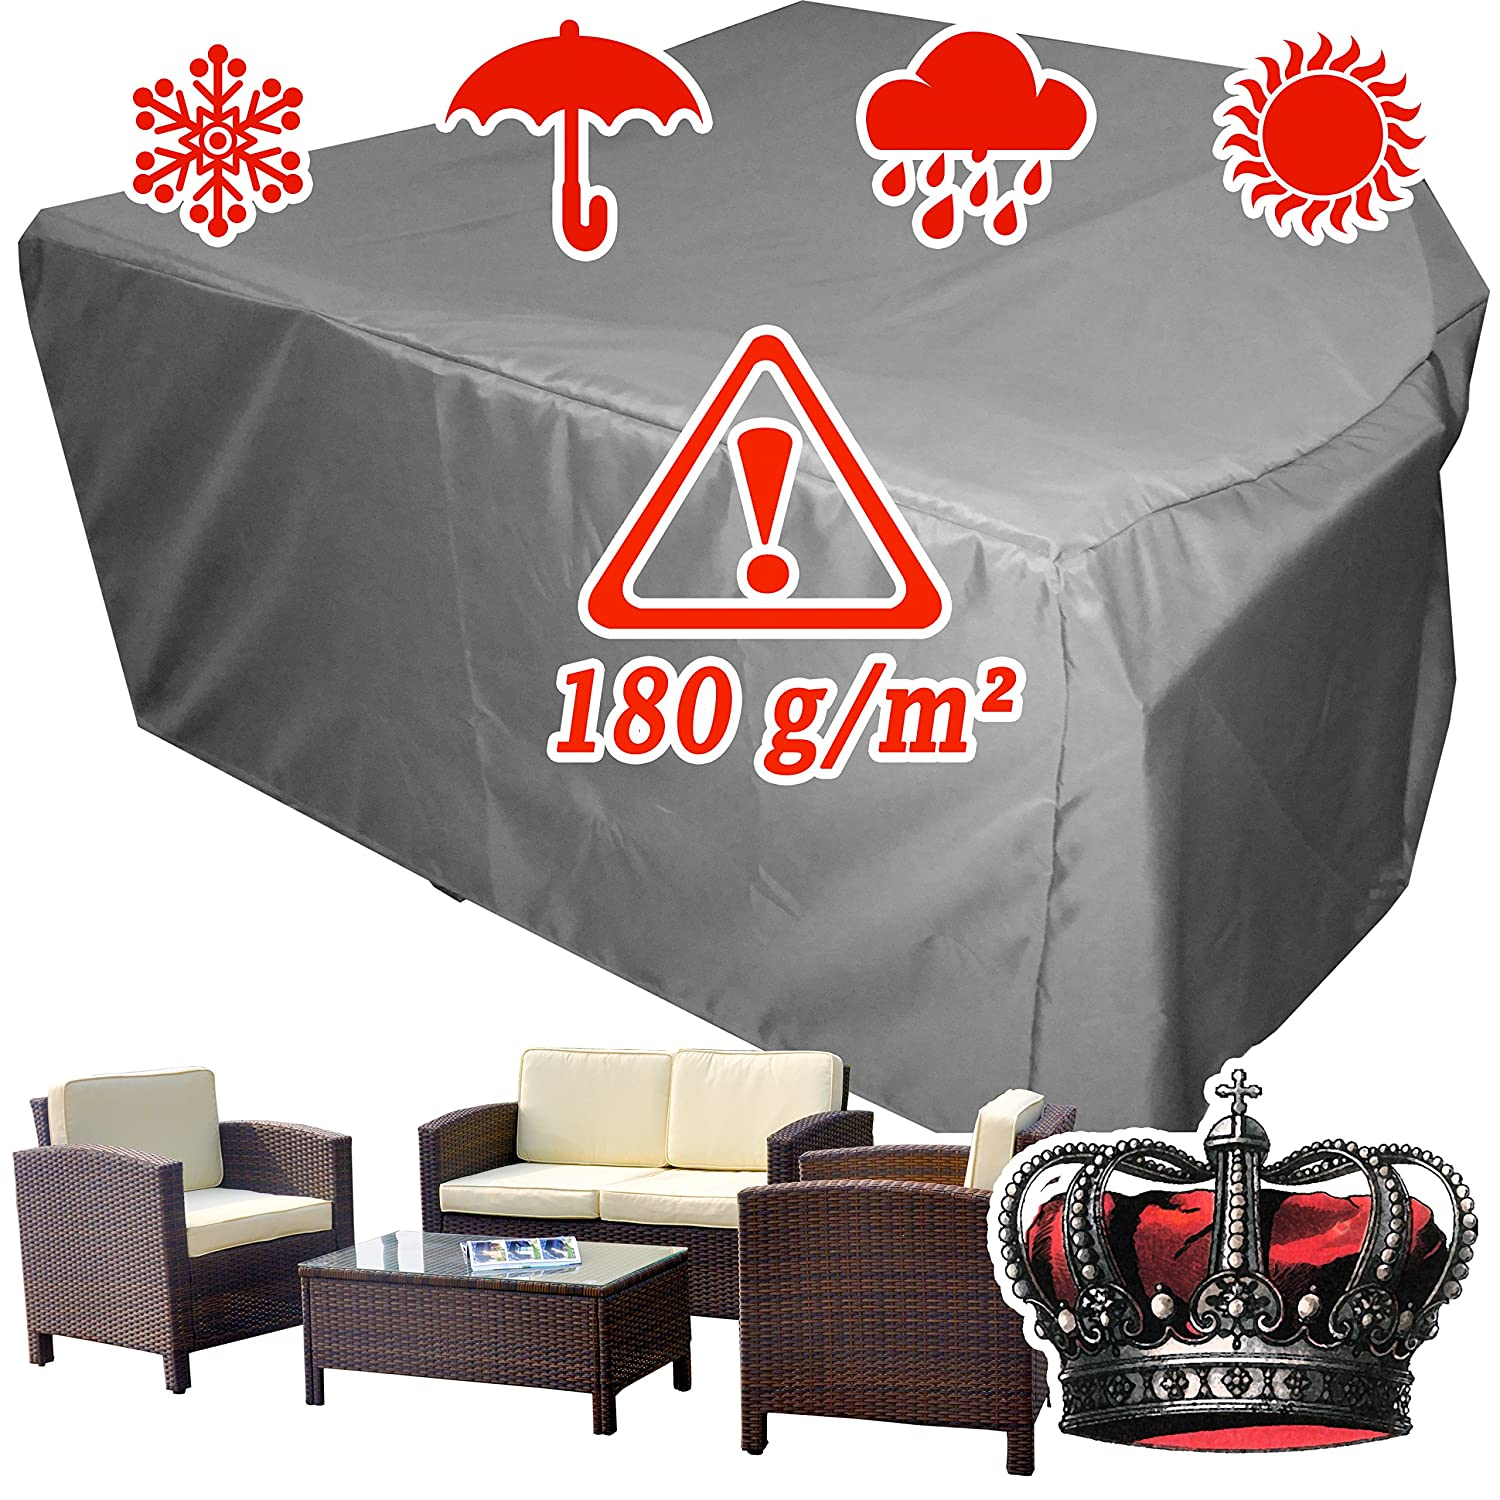 Amazon.de: winterfeste LUXUS Gartenmöbel Lounge Möbel Set ...